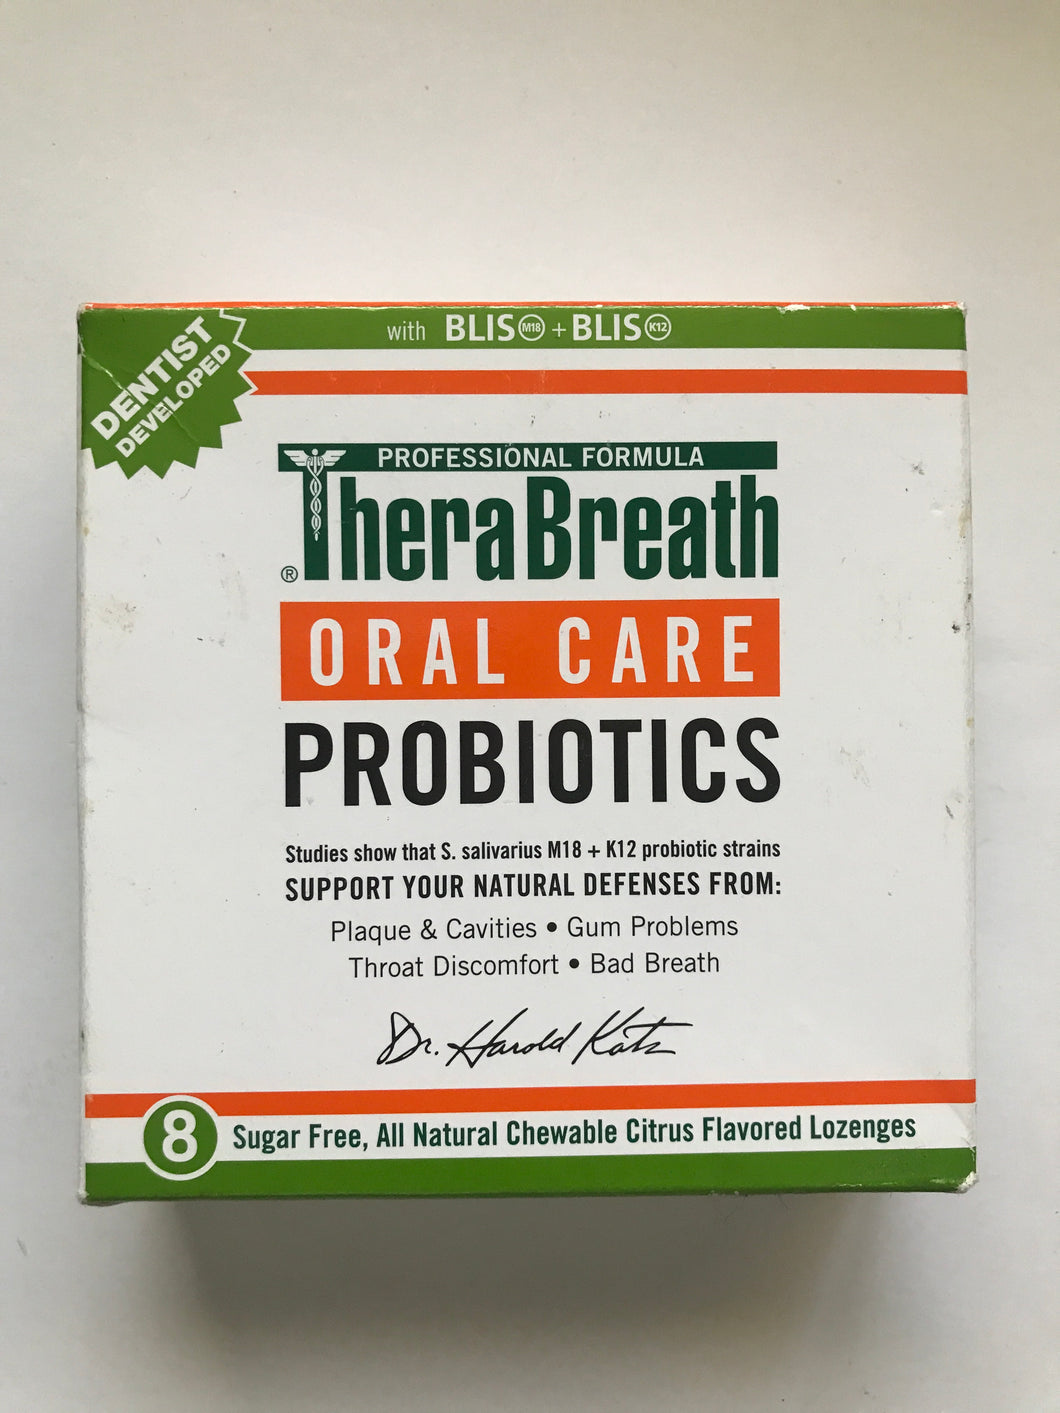 TheraBreath Oral Care Probiotics